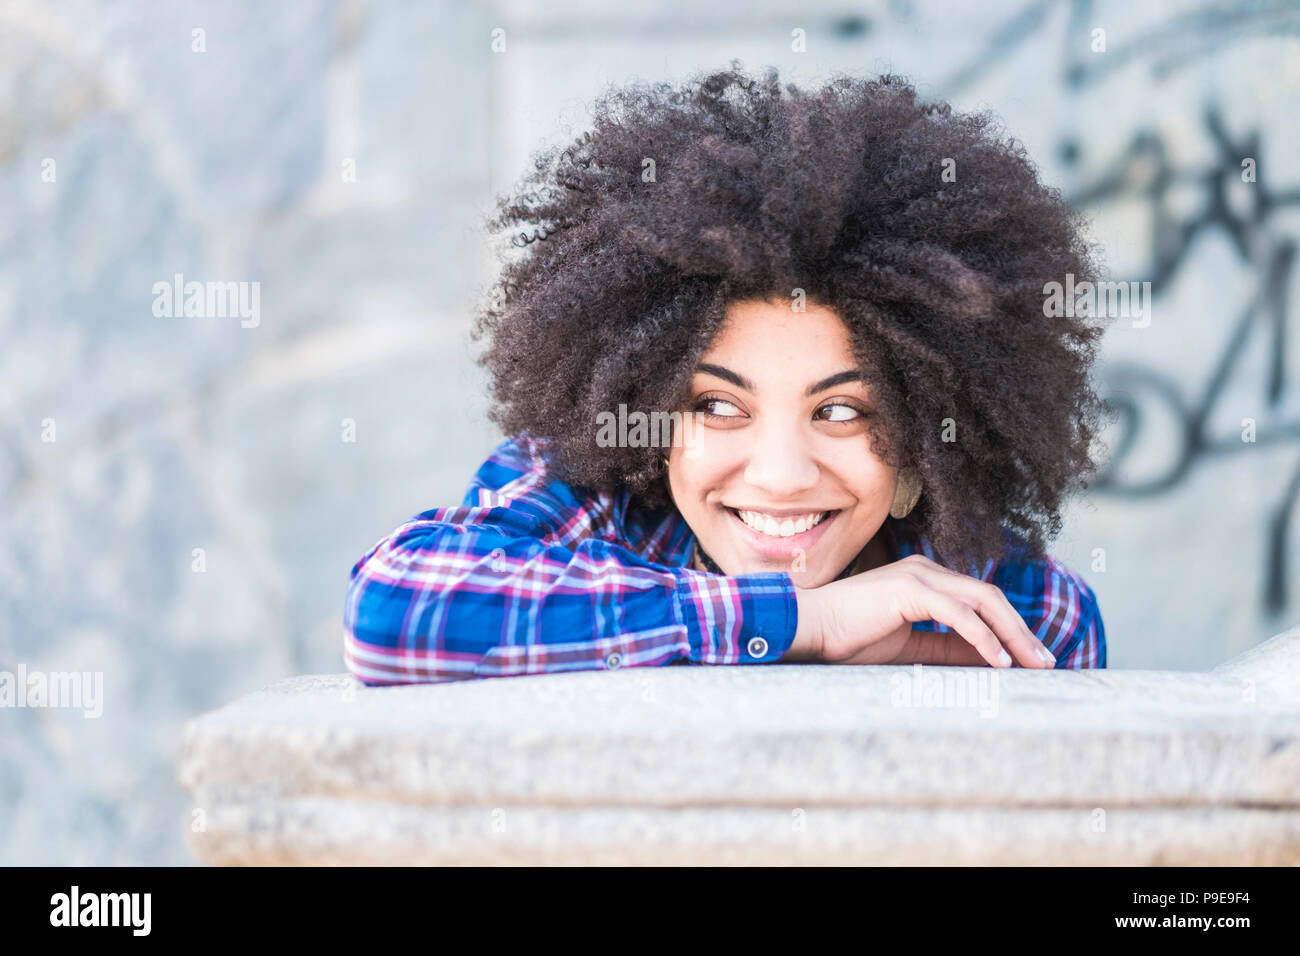 portrait of black skin african race of beautiful young girl smiling and looking at her side. enjoying the time and the leisure activity. casual and fa - Stock Image